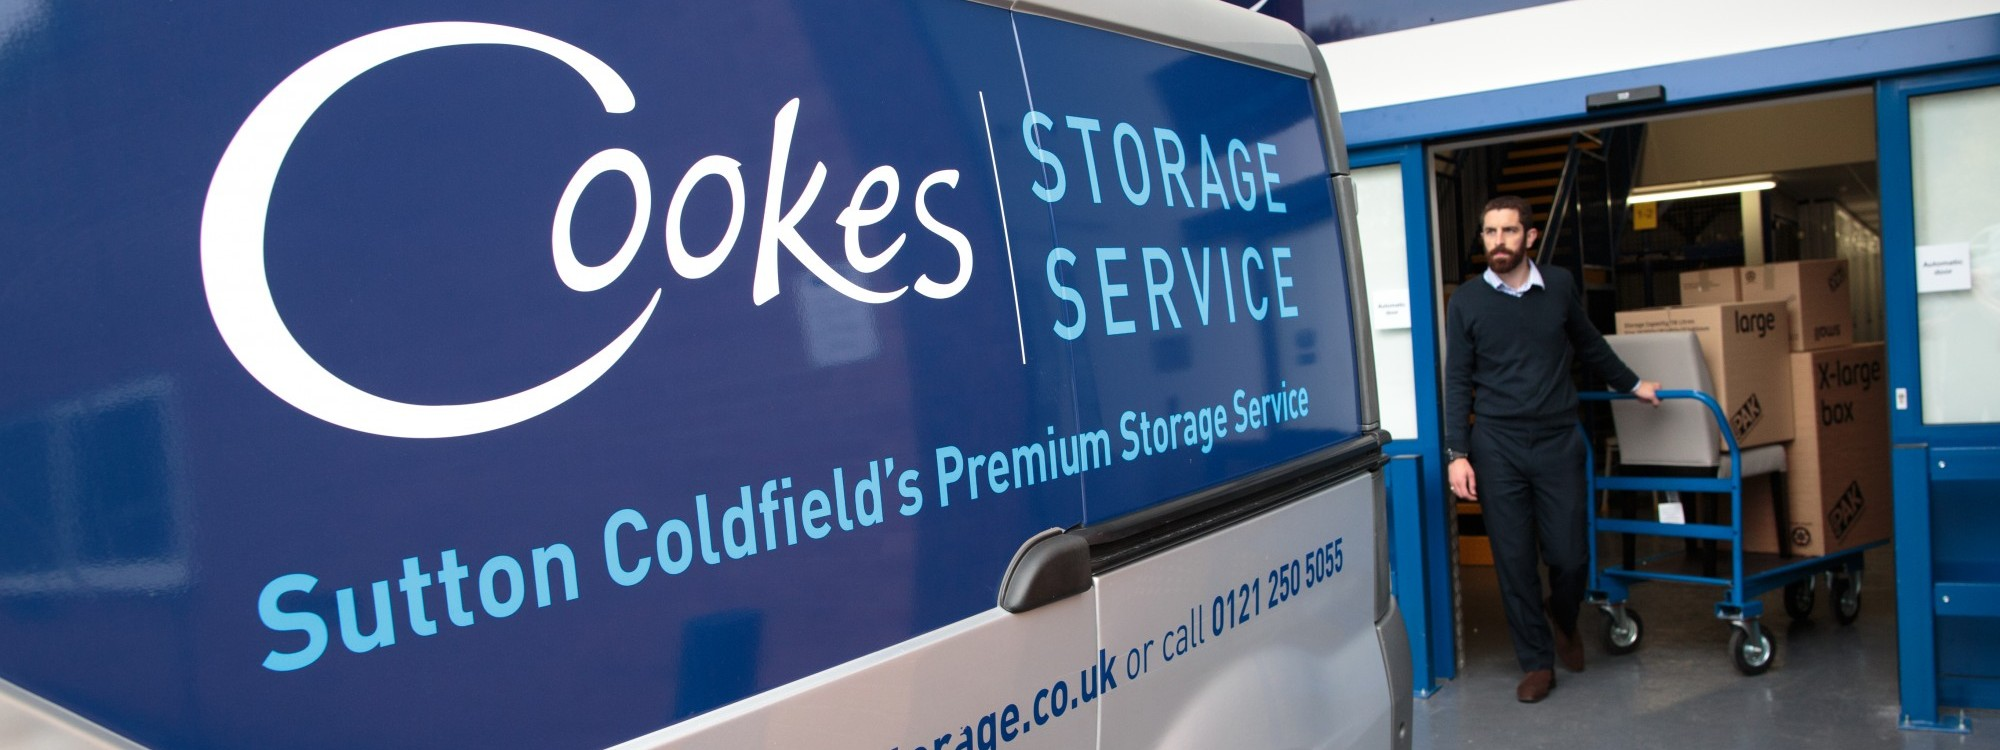 business storage from cookes storage